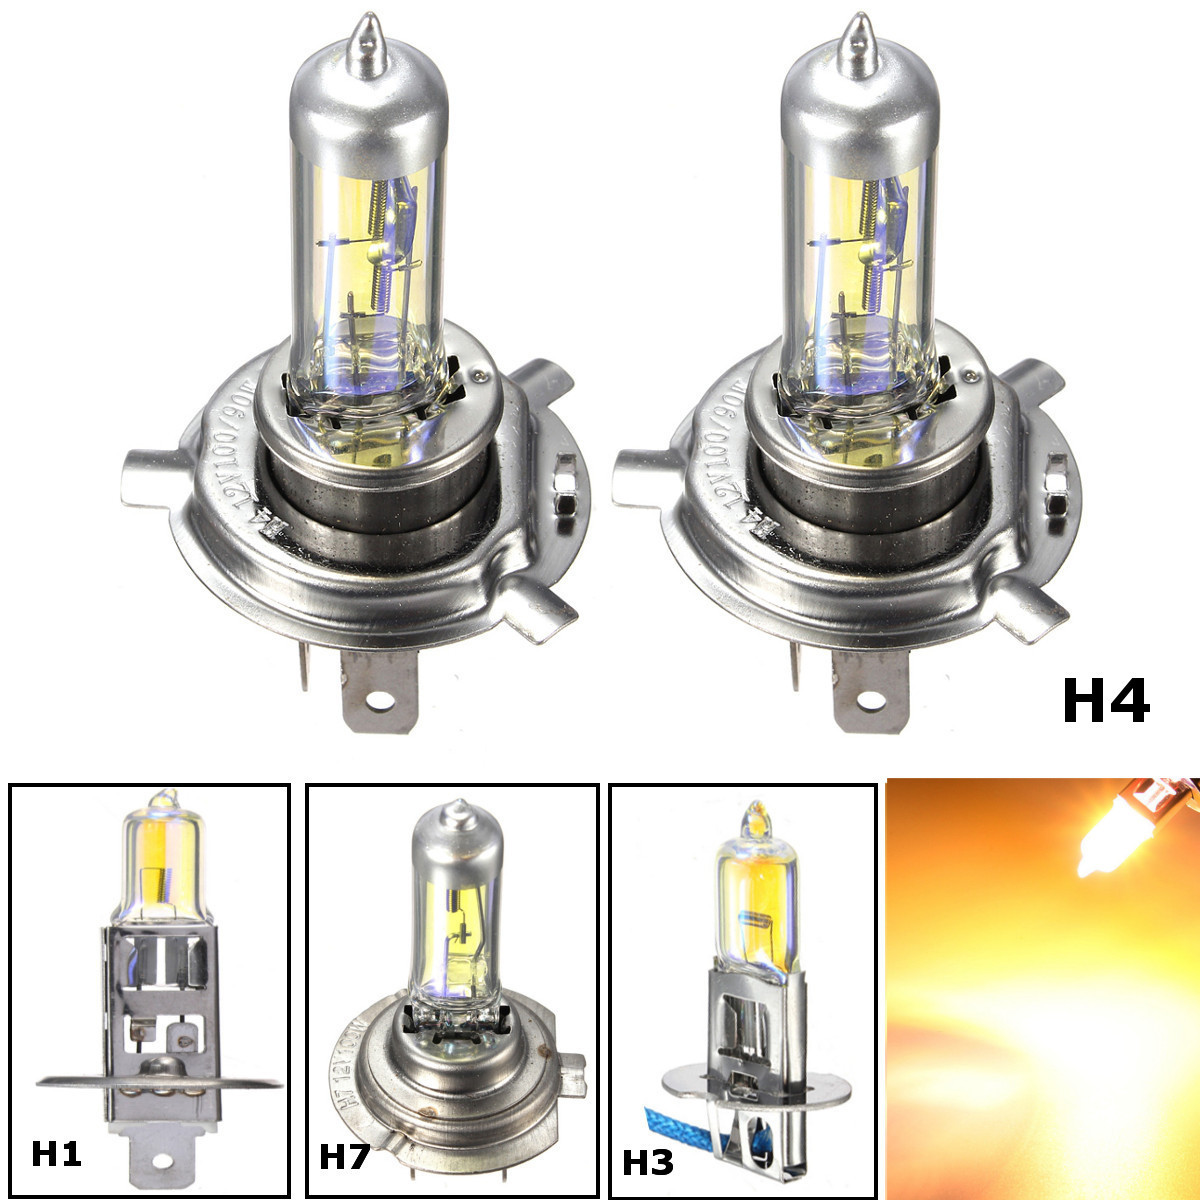 HIGH BEAM BULBS FOR Peugeot 308 MODELS H7H1 YELLOW XENON LOW